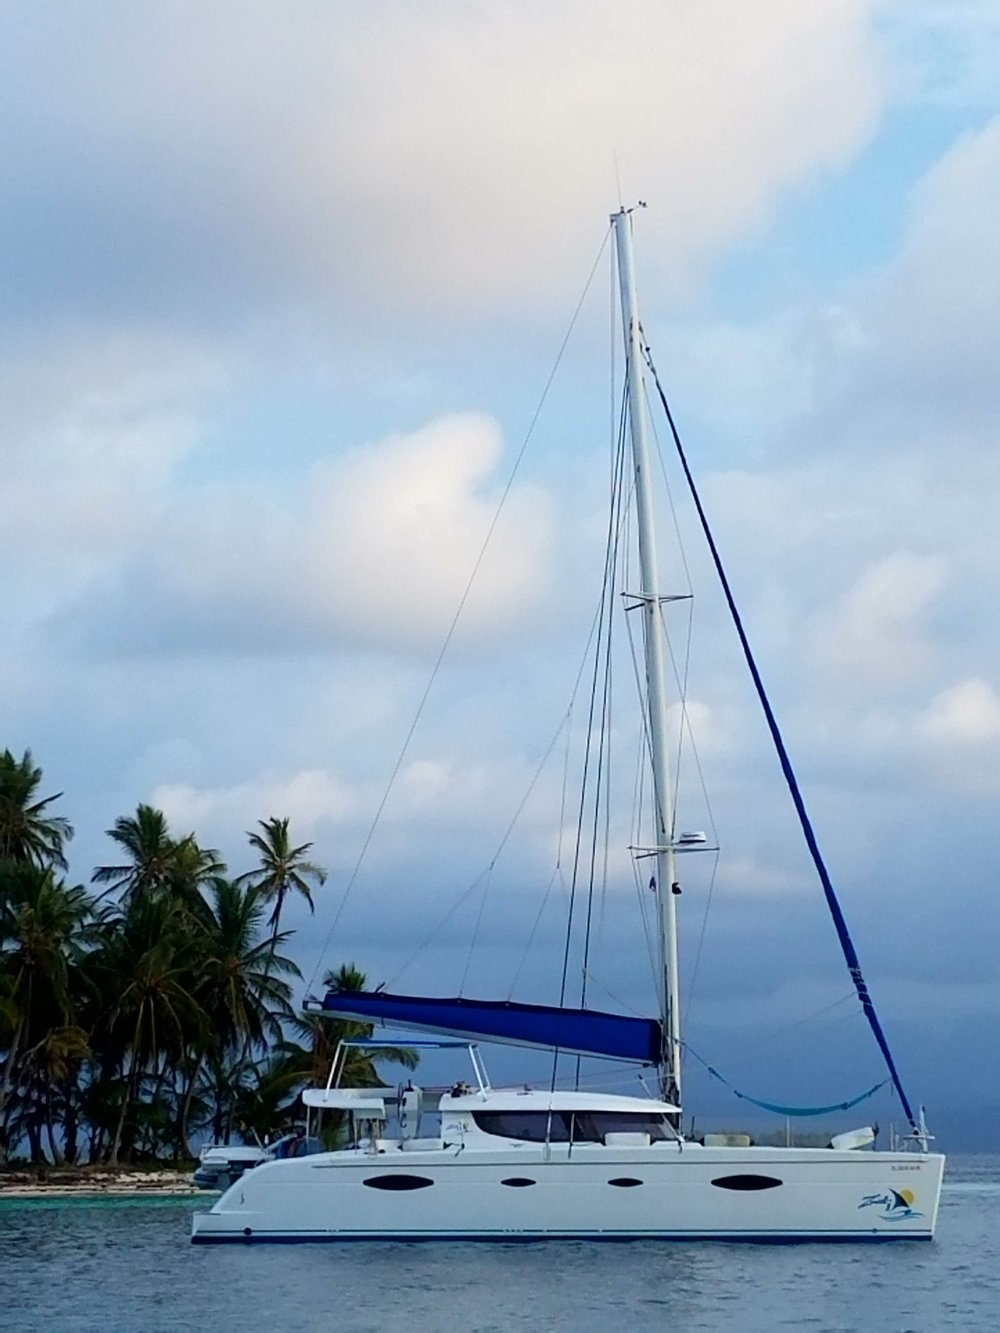 Zenith II -  We offer exclusive charters among the San Blas Islands with the Zenith II, a modern 48-foot-long and 25-foot-wide catamaran built in France in 2008.  An 11-foot dinghy with an outboard motor will bring you to and from the Zenith II and the islands of San Blas.